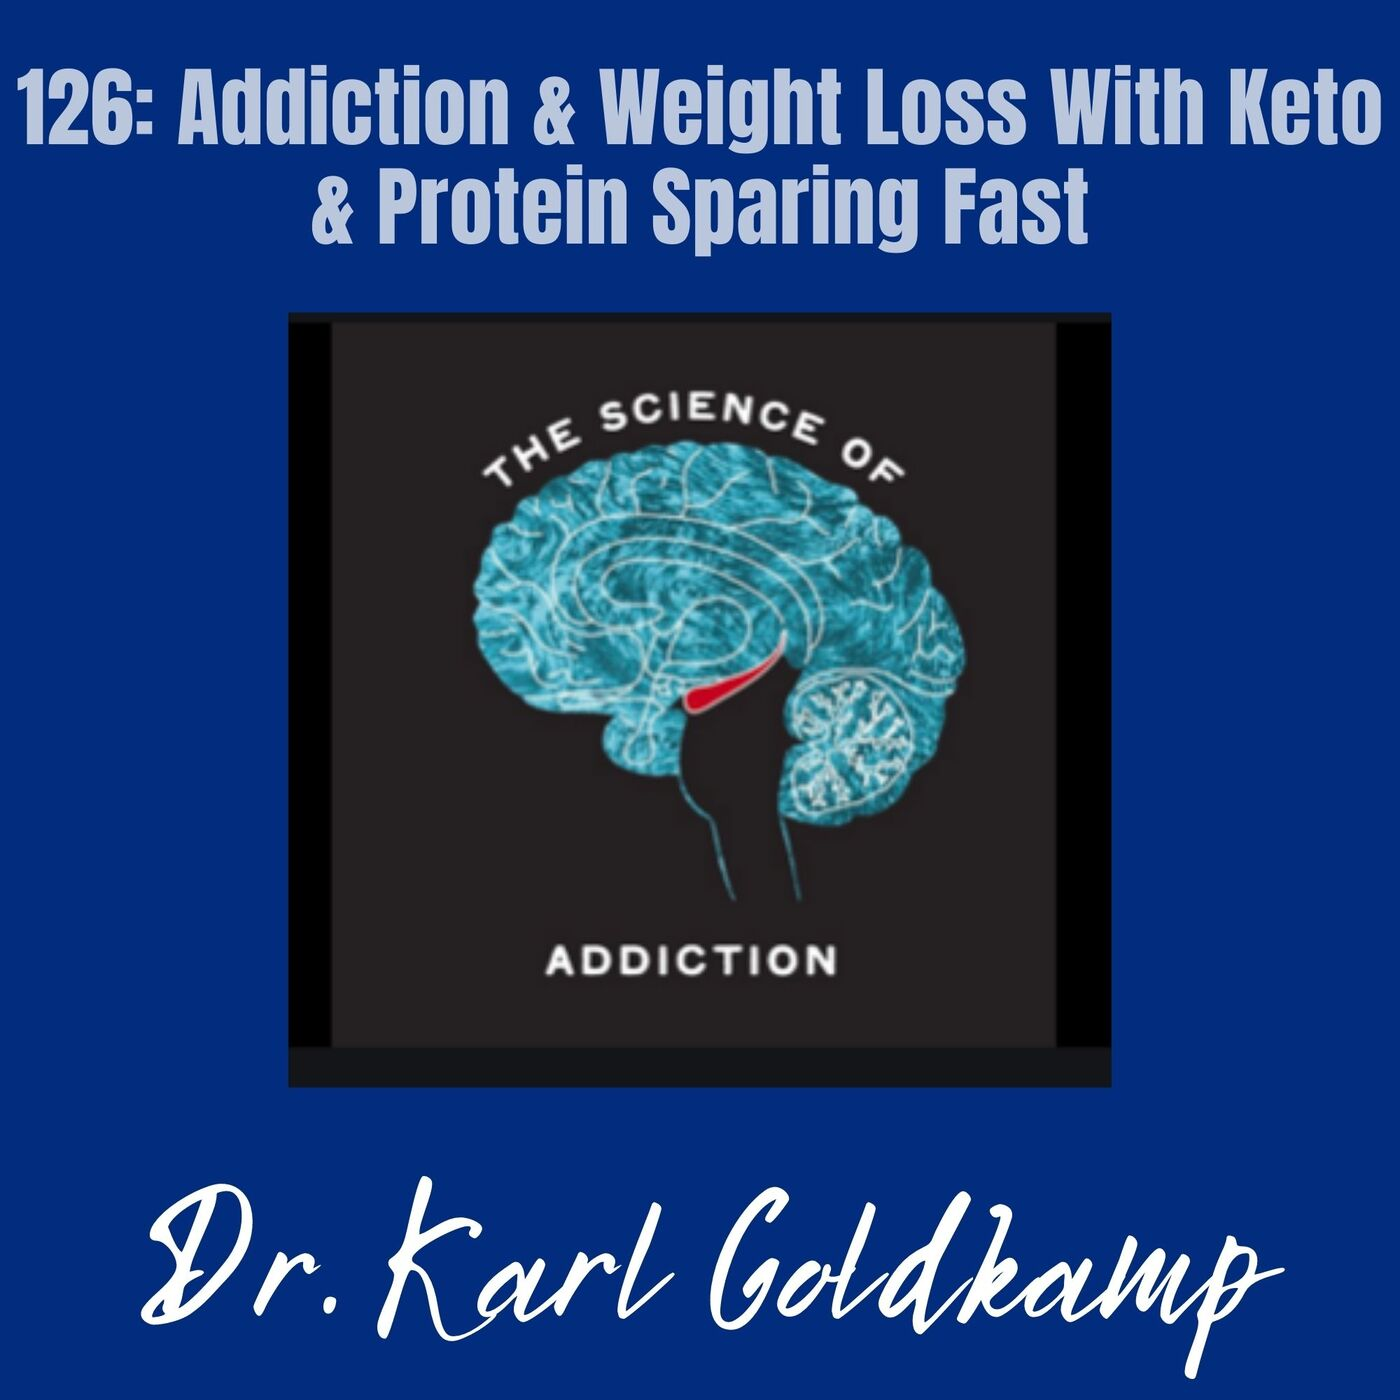 126: Addiction & Weight Loss With Keto & Protein Sparing Fast